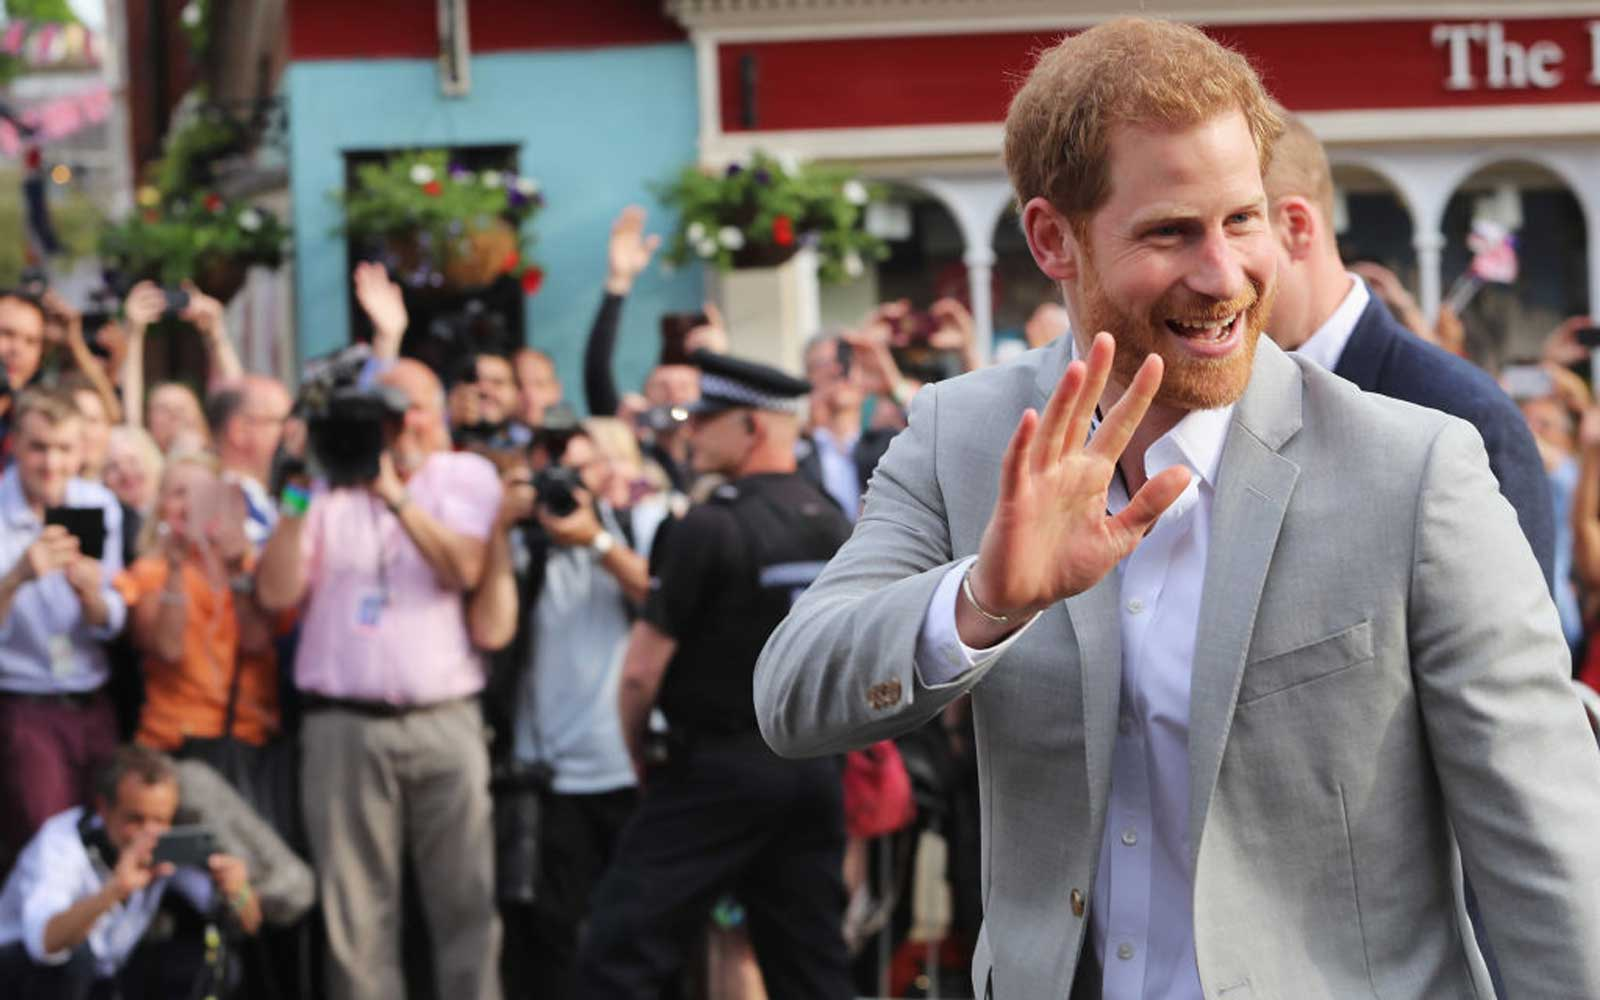 Prince Harry Just Made His Last Pre-wedding Appearance and He Looks so Excited (Video)